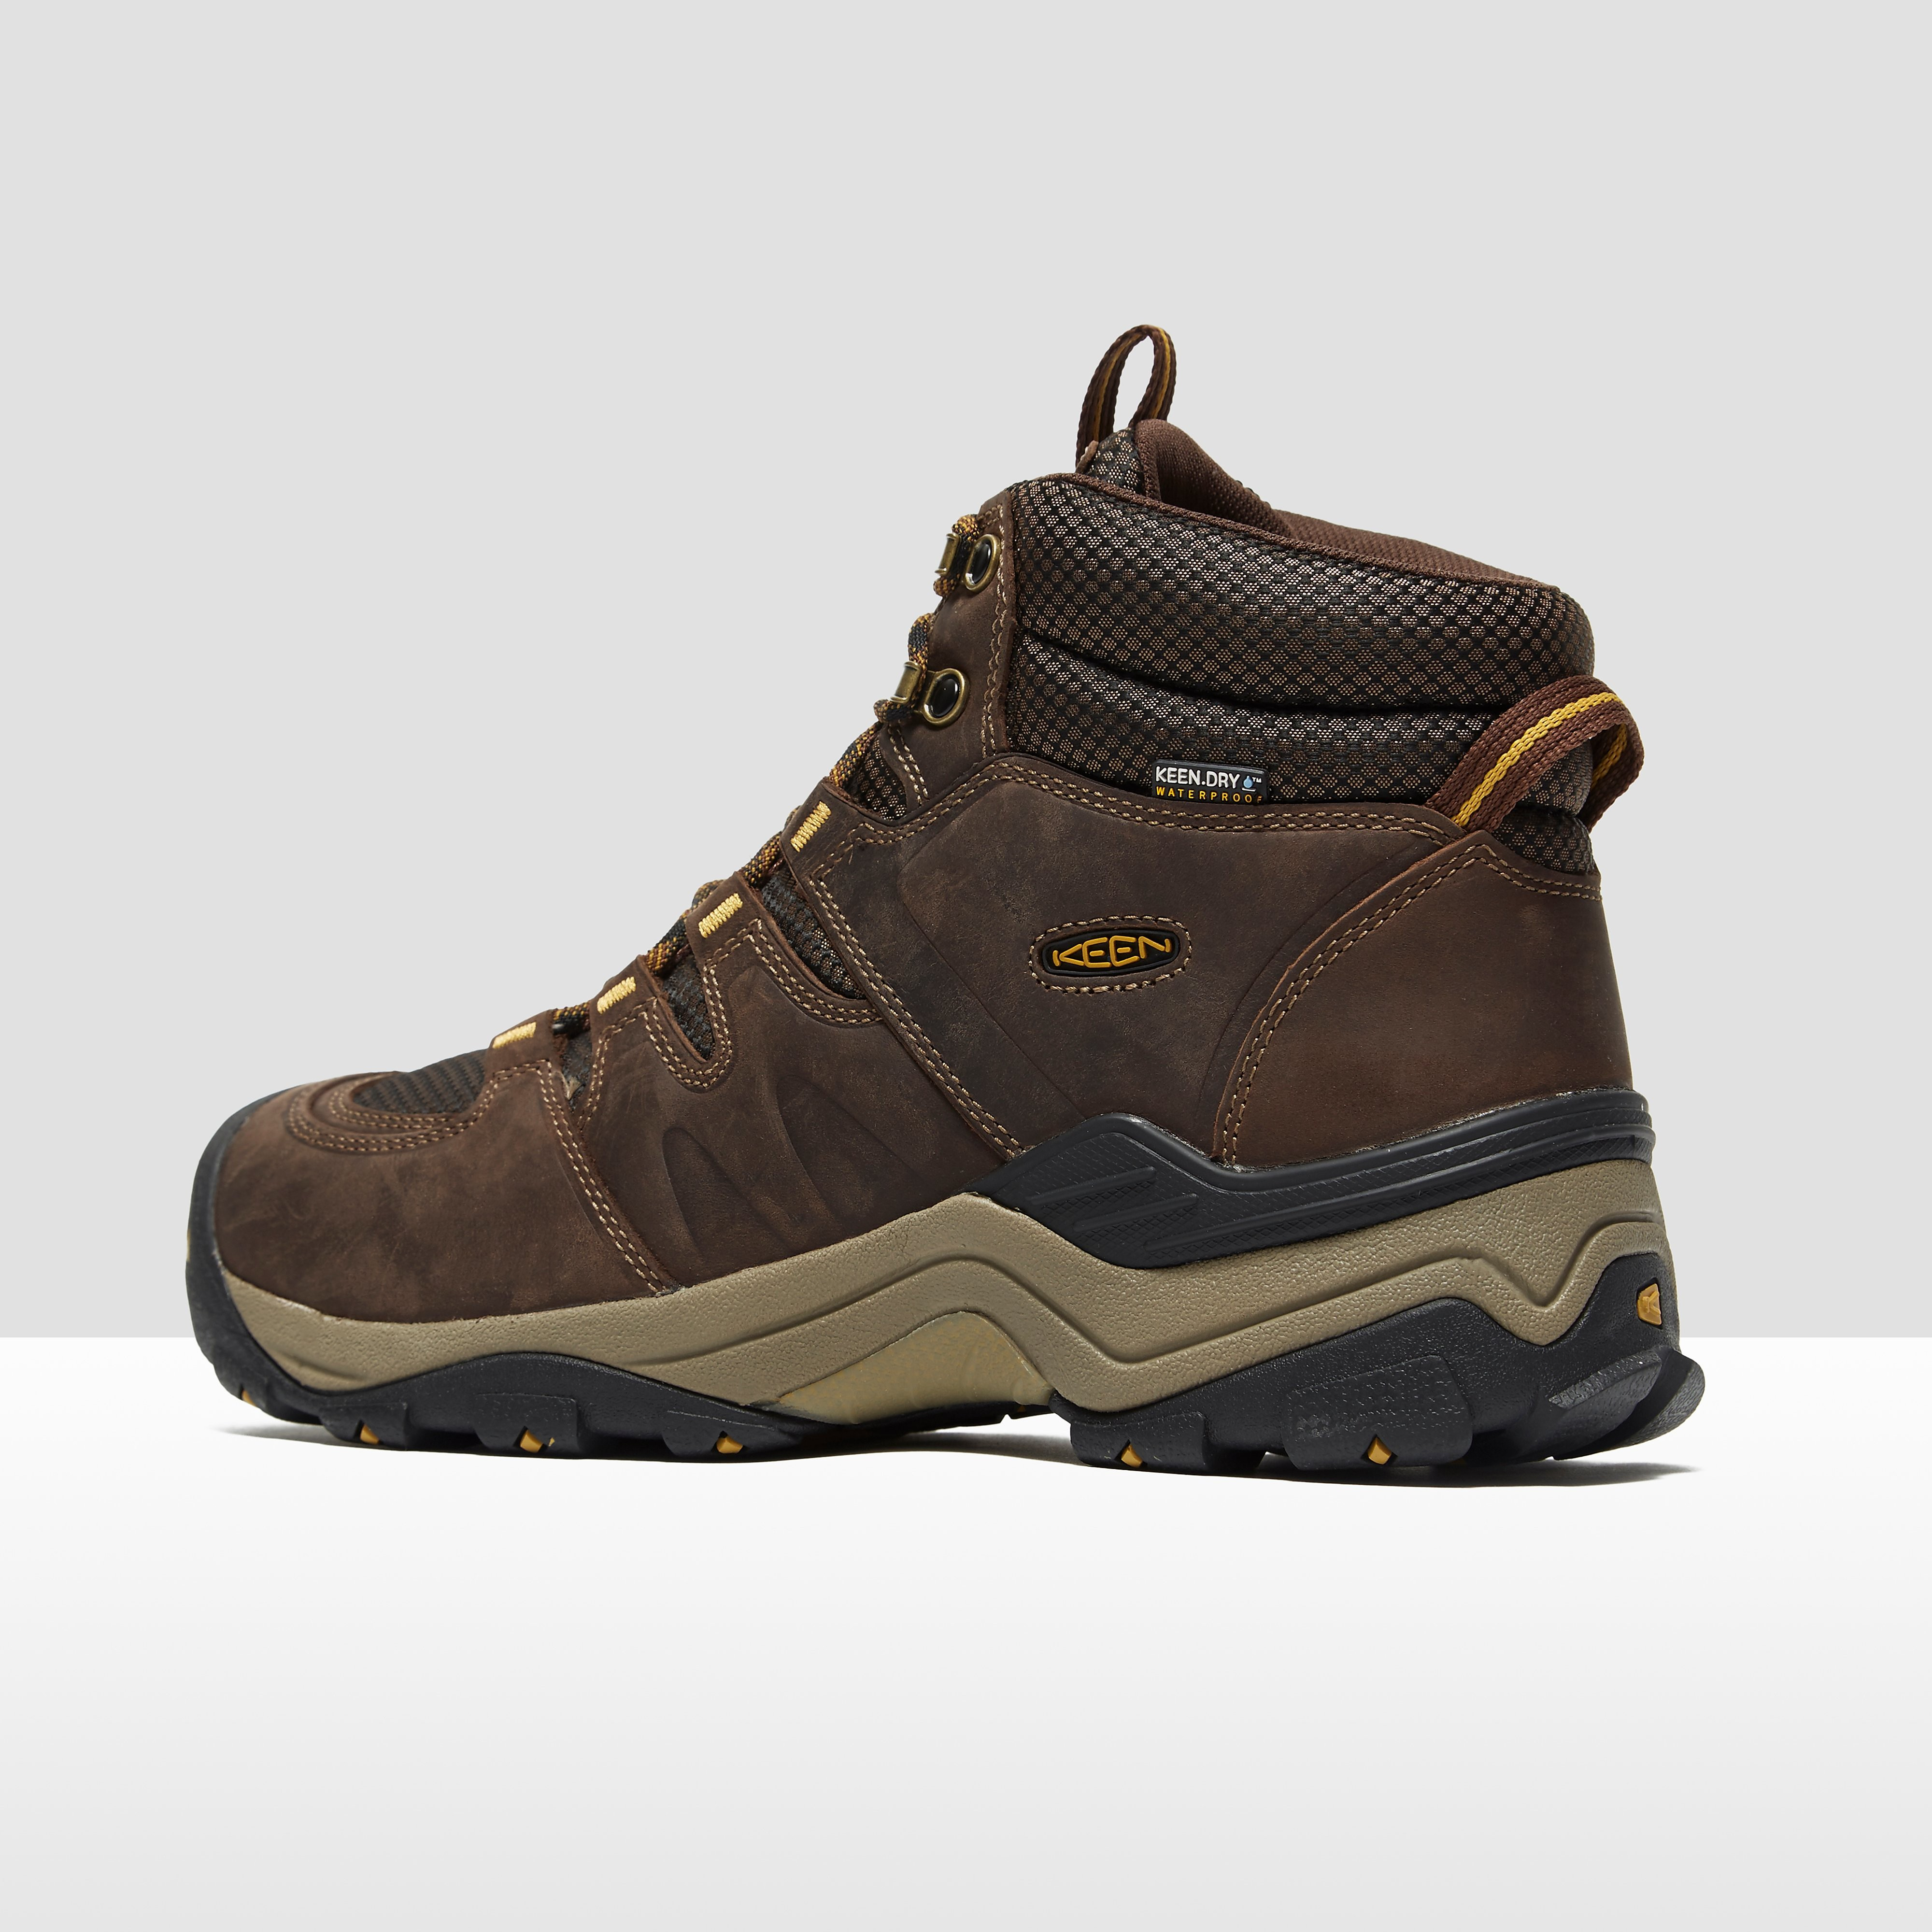 Keen Men's Gypsum II Mid Walking Boots